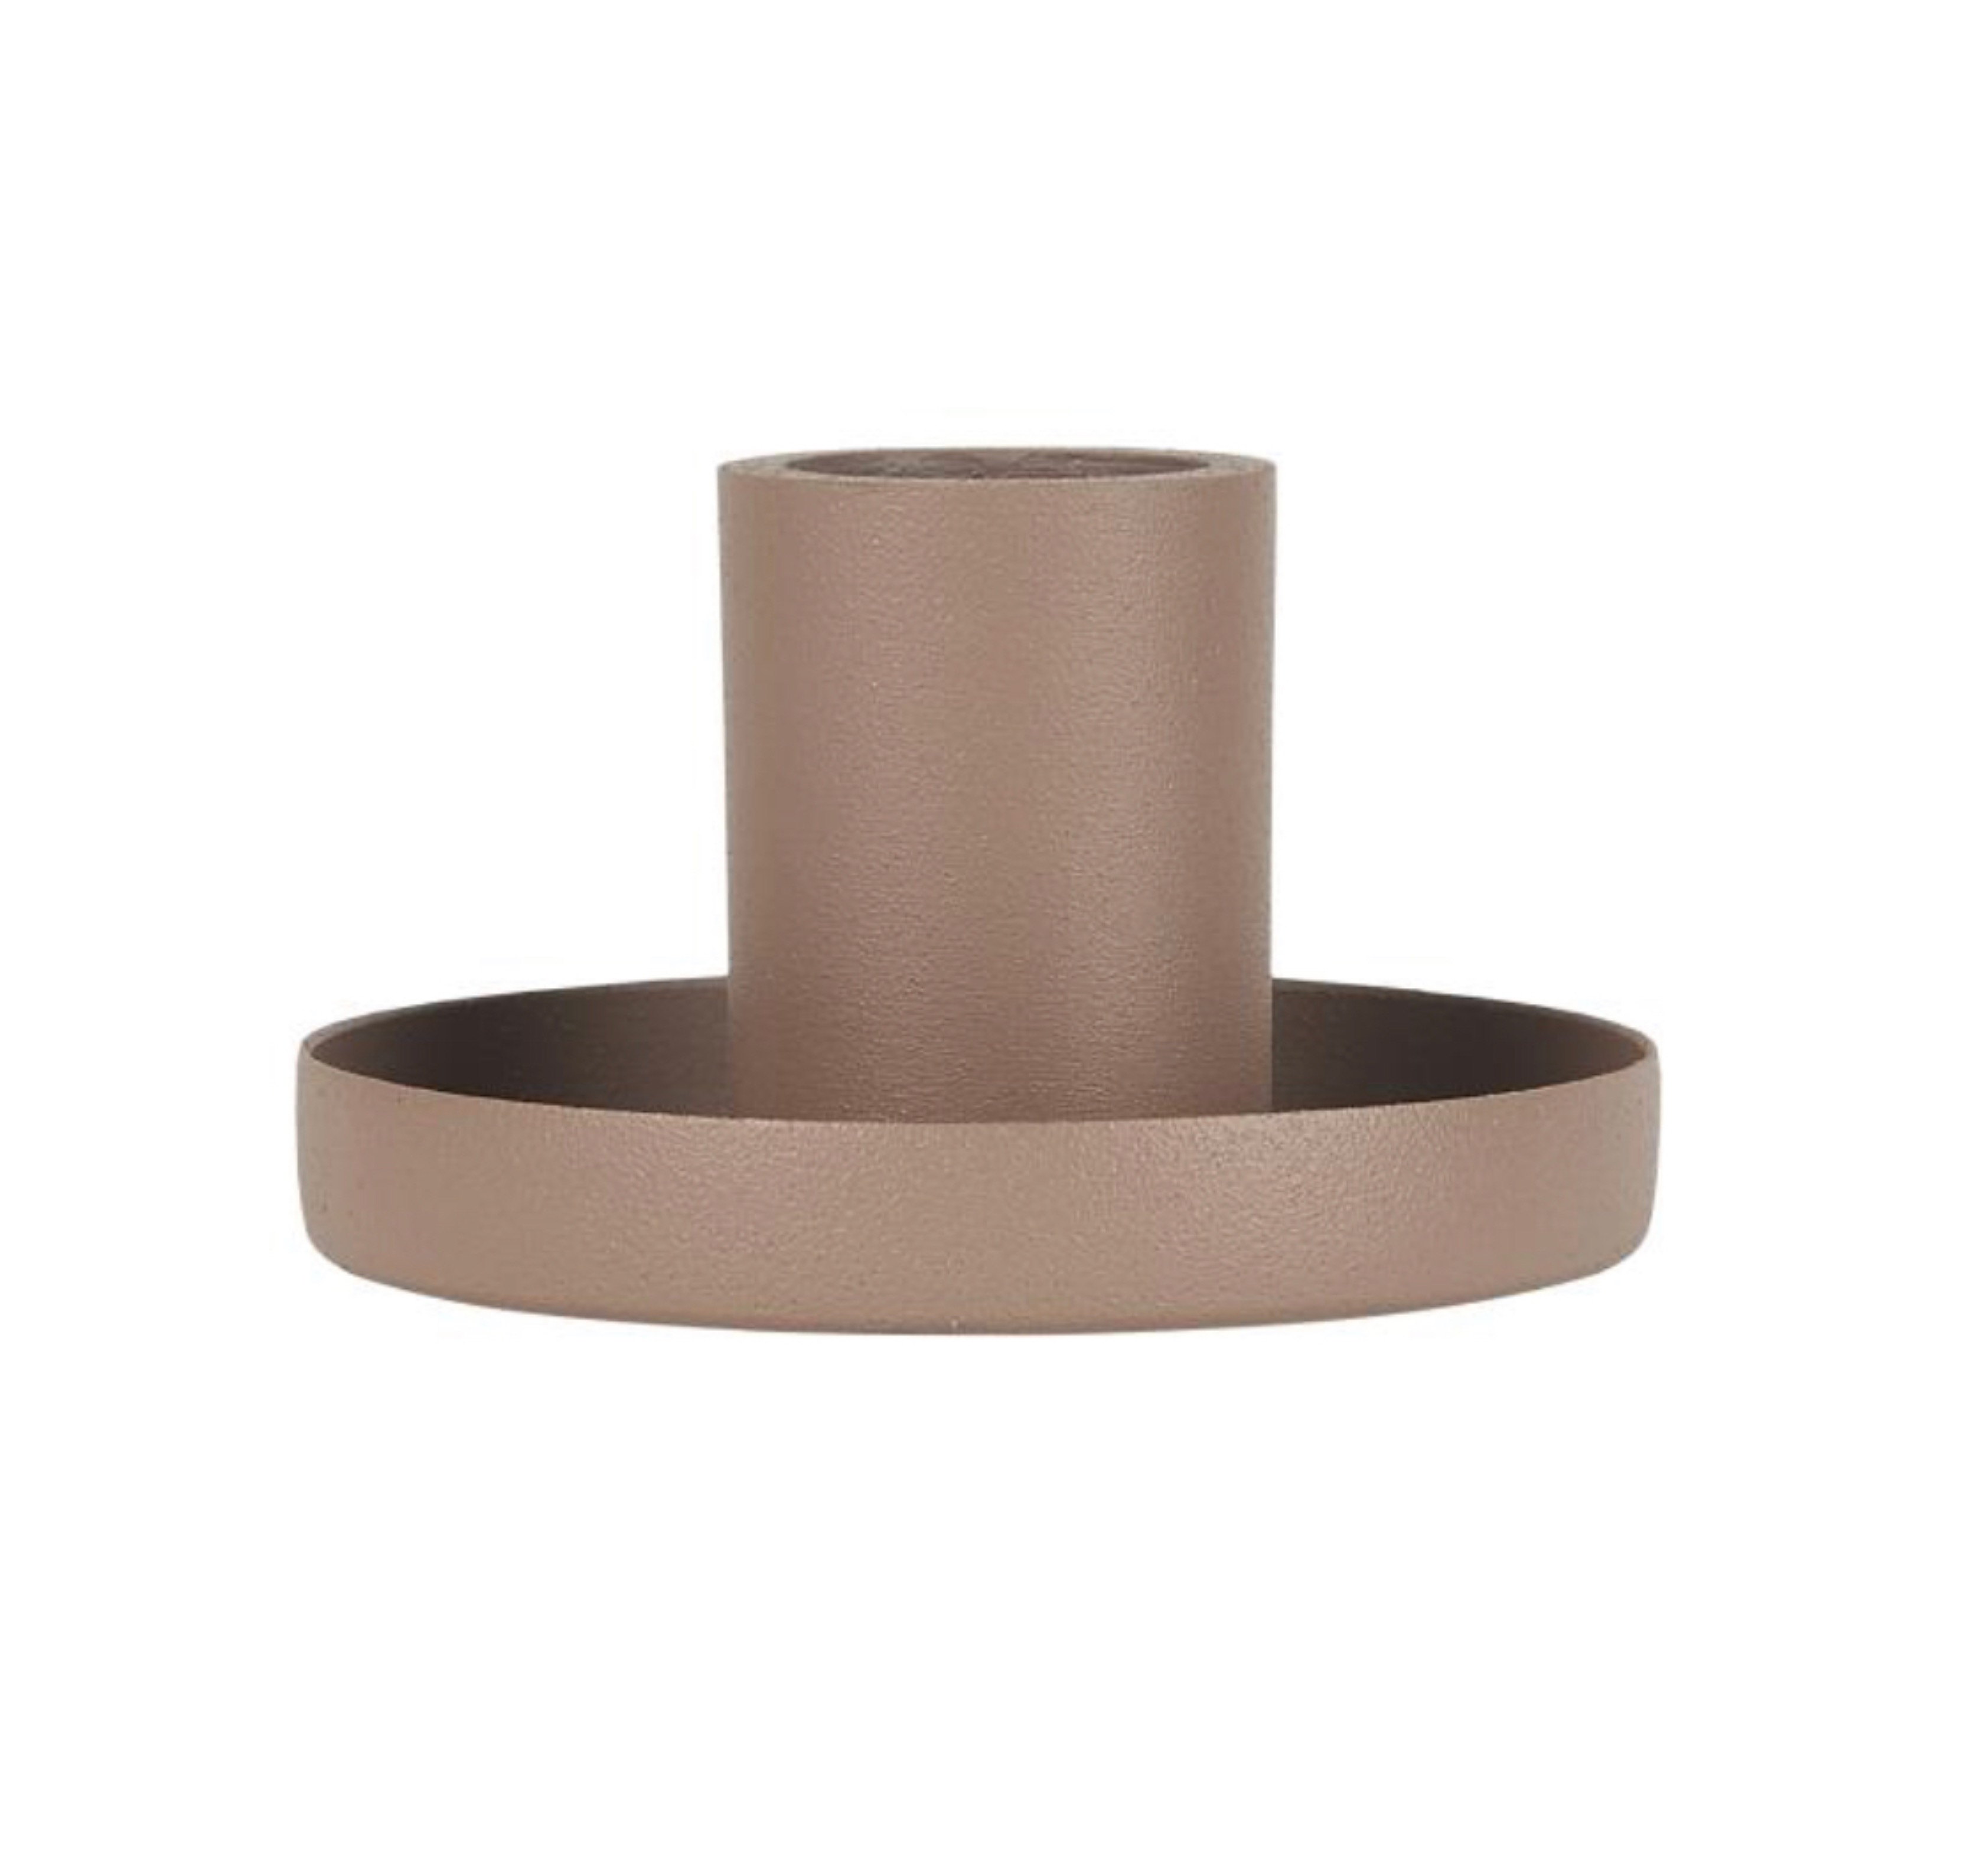 Candle holder f/dinner candle malva